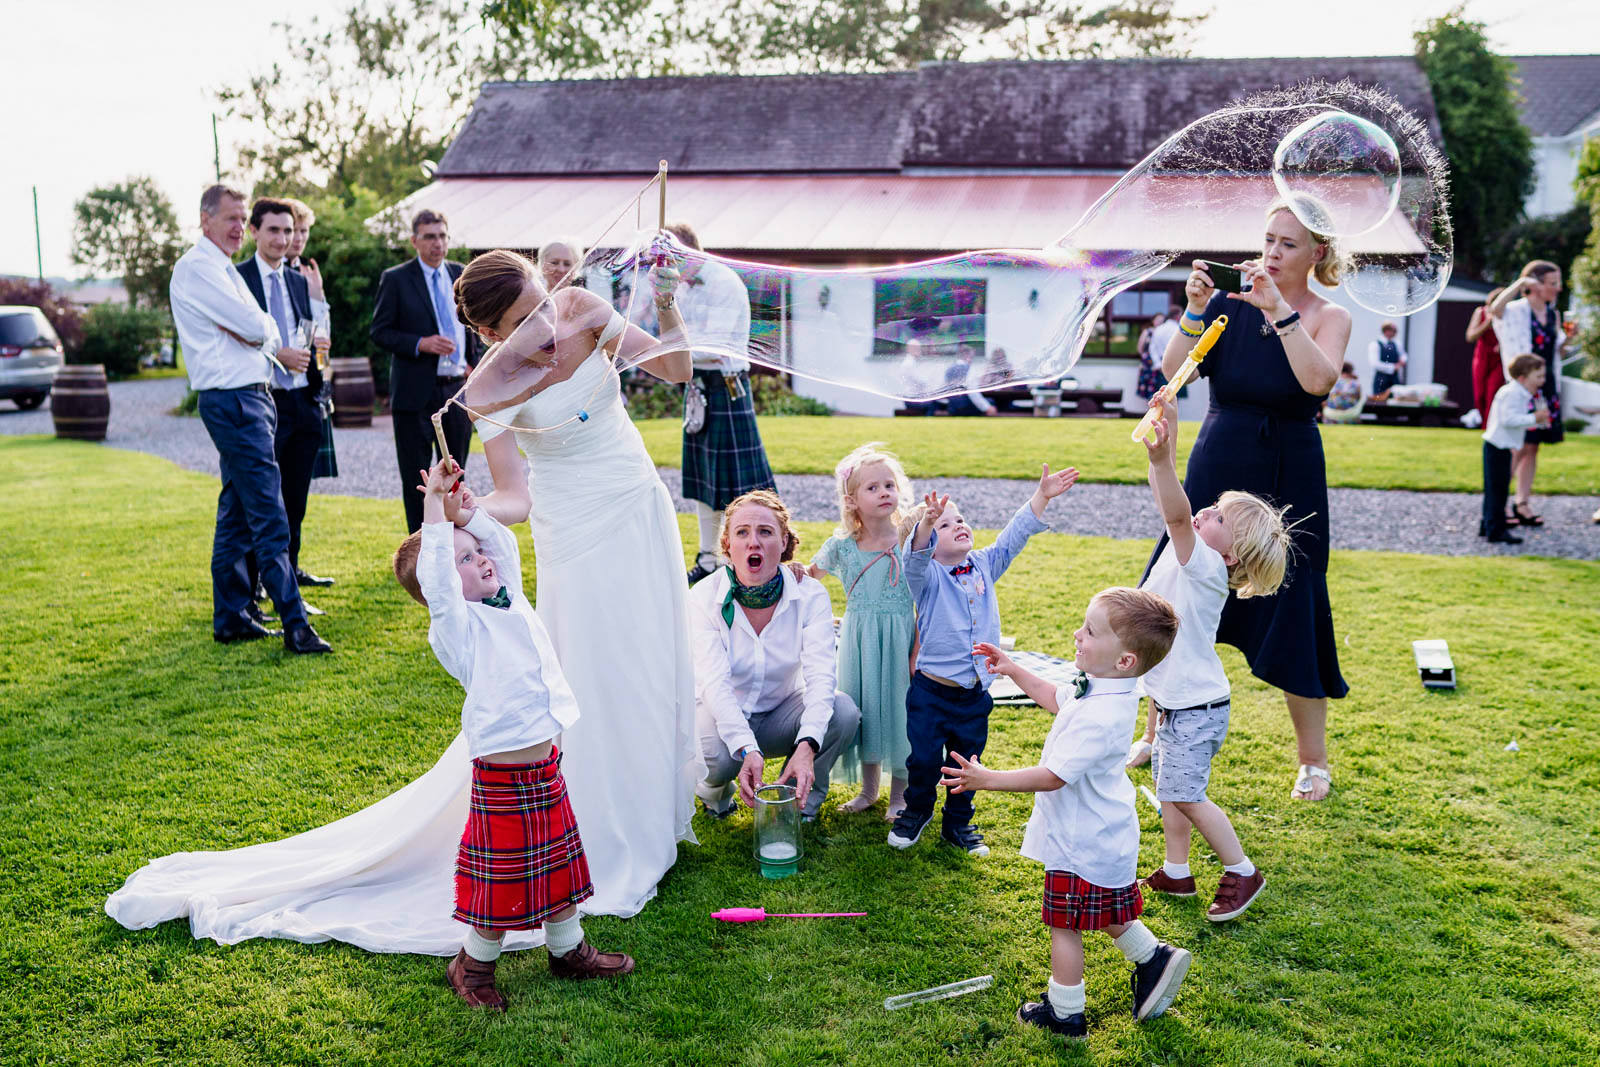 bride plays with giant bubbles for children at her wedding at Jabajak Vineyard in West Wales